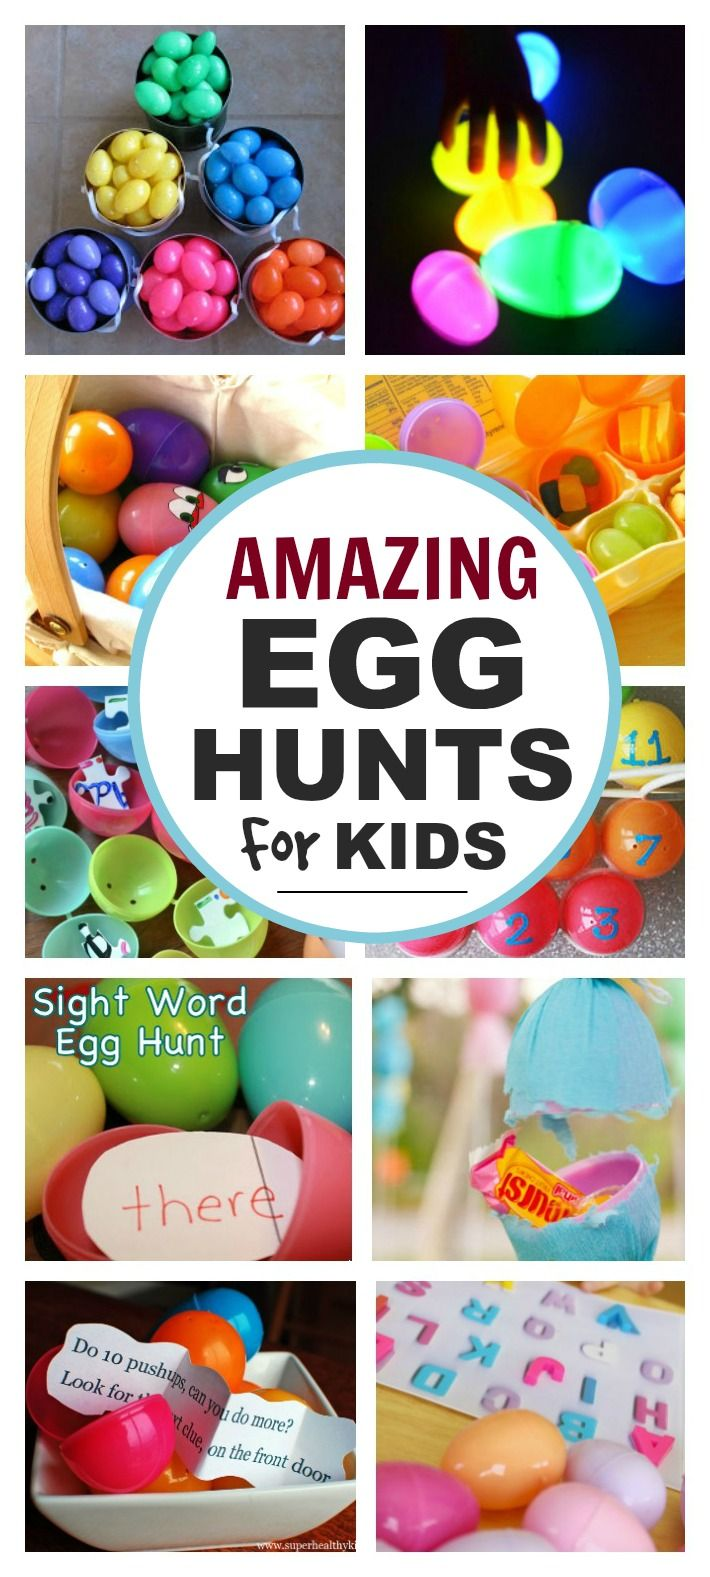 easter egg hunt ideas for kids in 2018 | play activities for kids